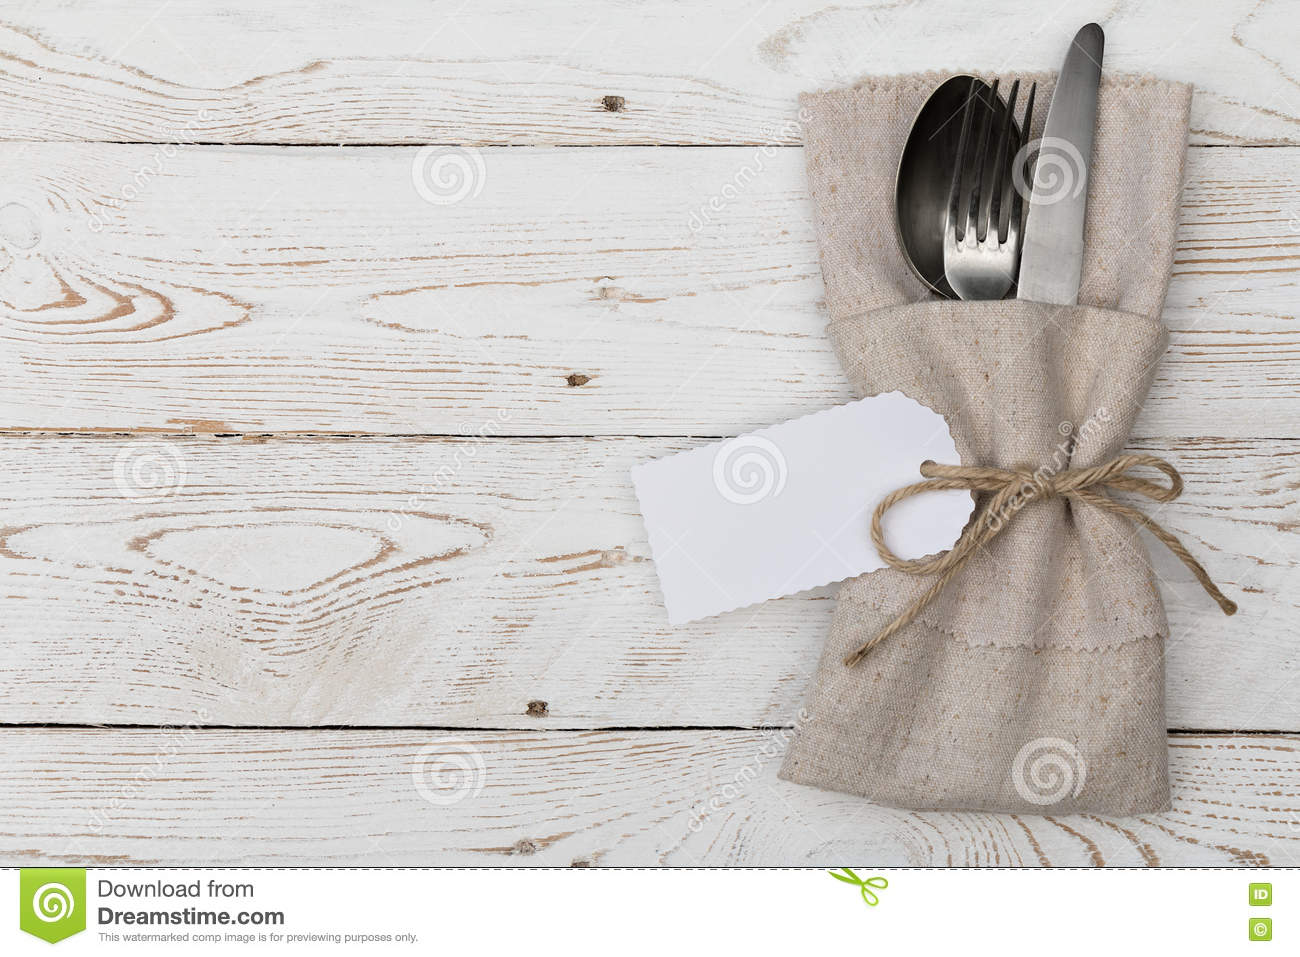 Silverware With An Empty Tag On A Table Stock Photo Image Of Napkin Dish 72661498